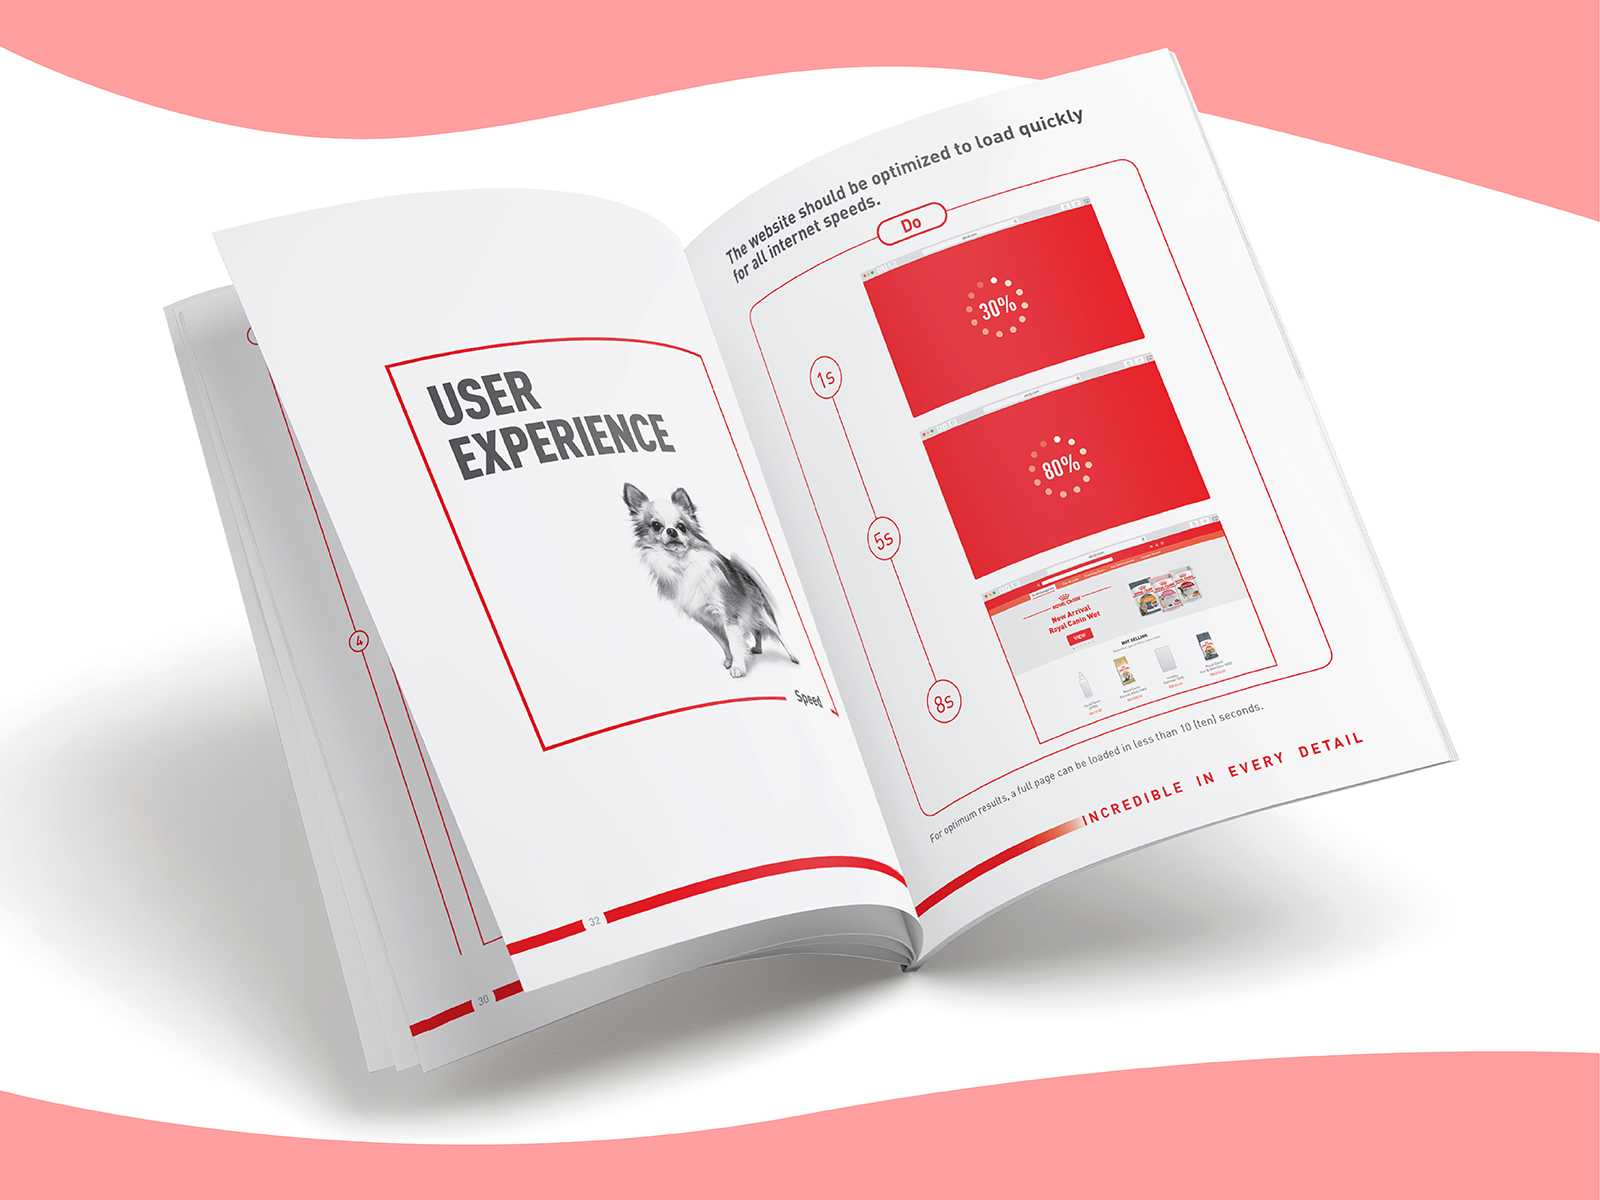 Royal Canin digital CI extension booklet inner page design that talks about user experience